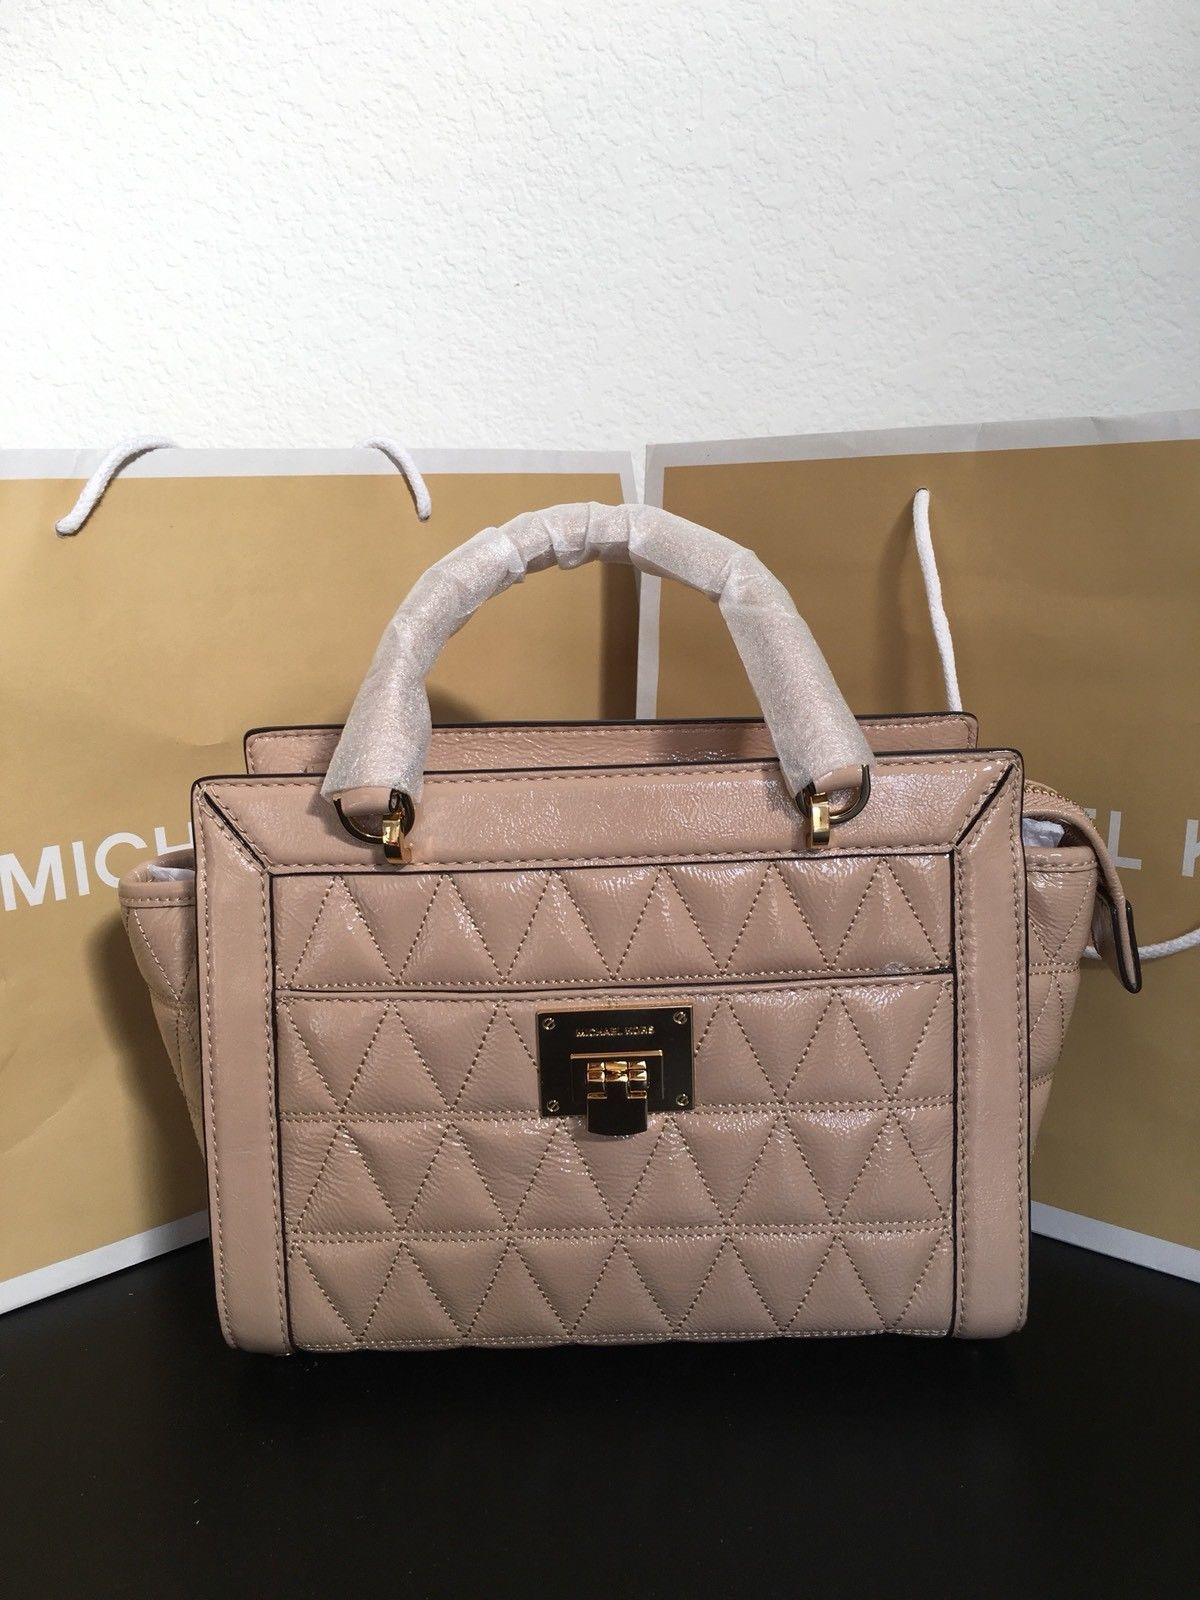 f261d494523b S l1600. S l1600. NWT Michael Kors VIVIANNE Quilted SM TZ Patent Leather  Messenger Bag OYSTER $348